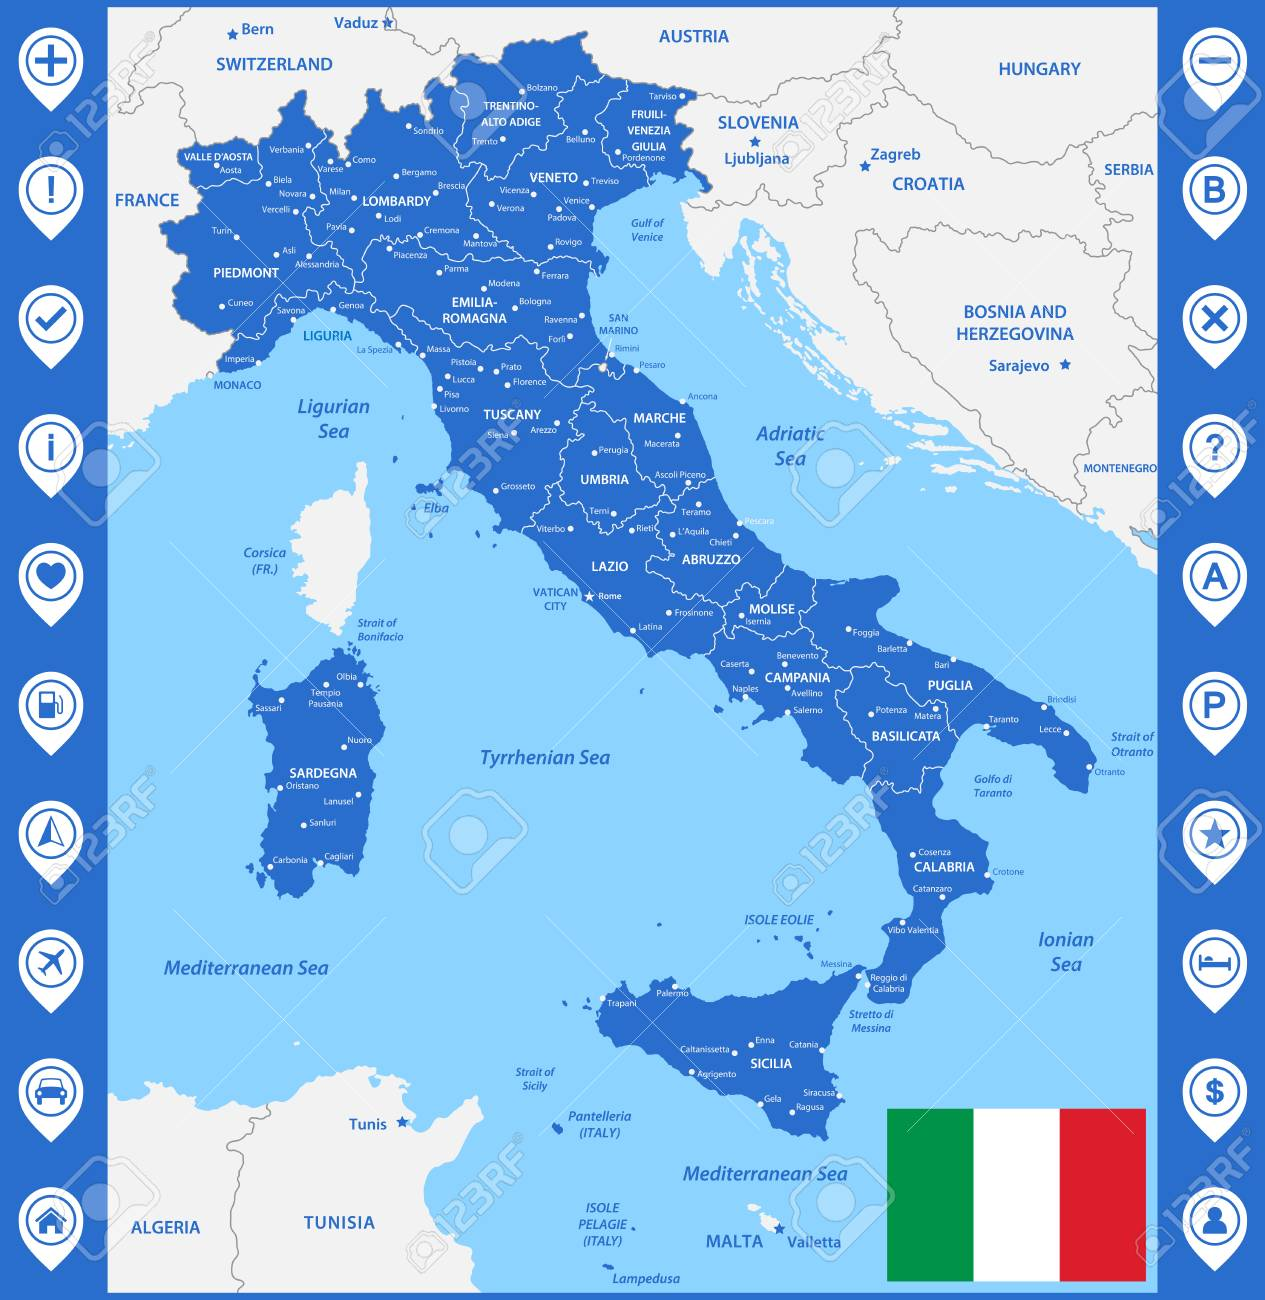 Map Of Italy And Austria With Cities.The Detailed Map Of The Italy With Regions Or States And Cities